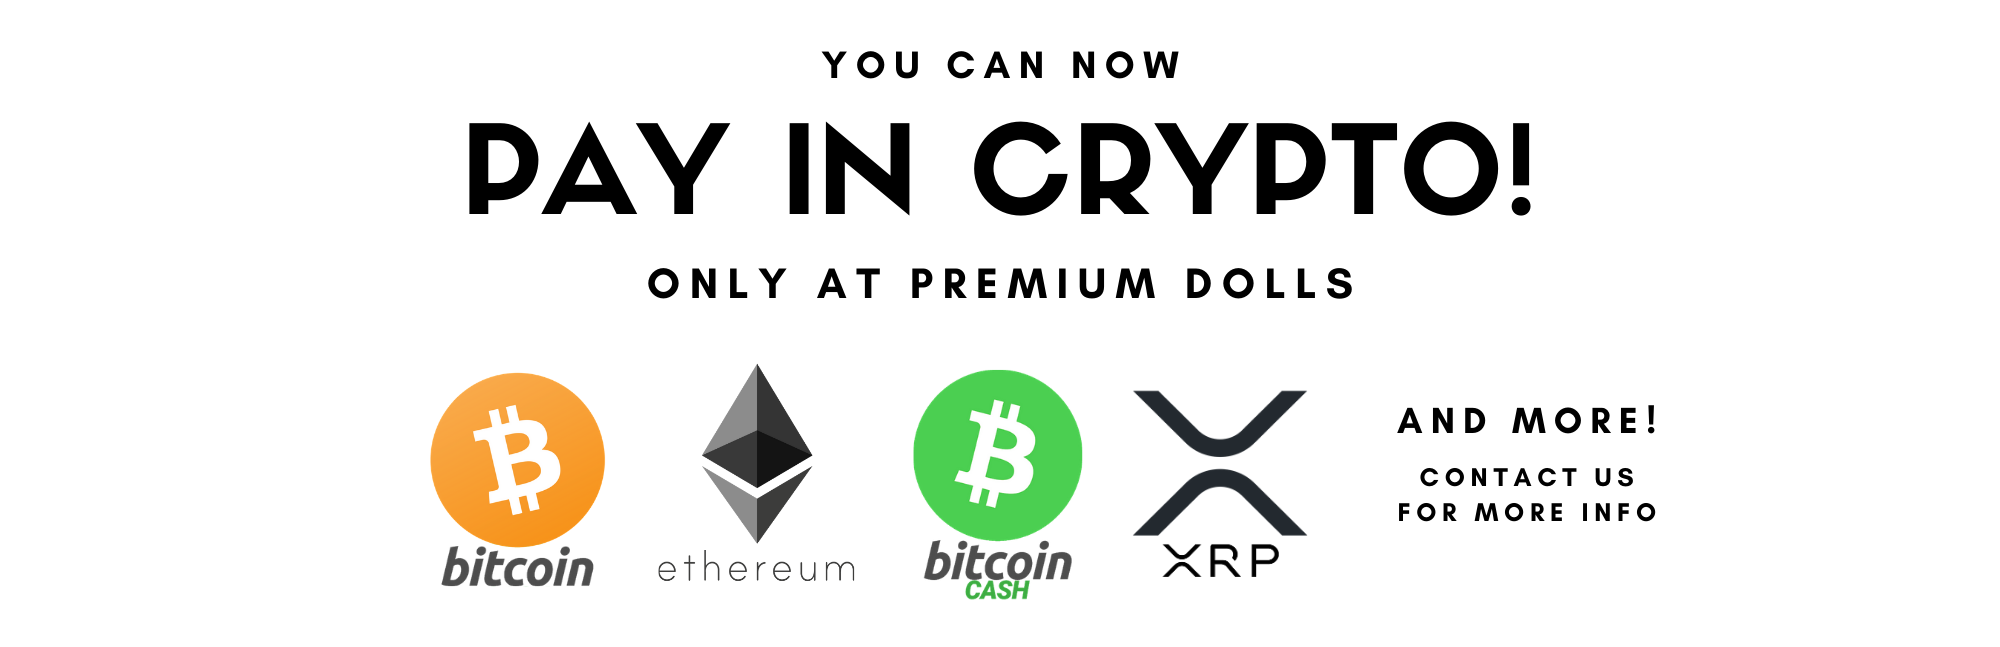 Pay in Crypto at Premium Dolls